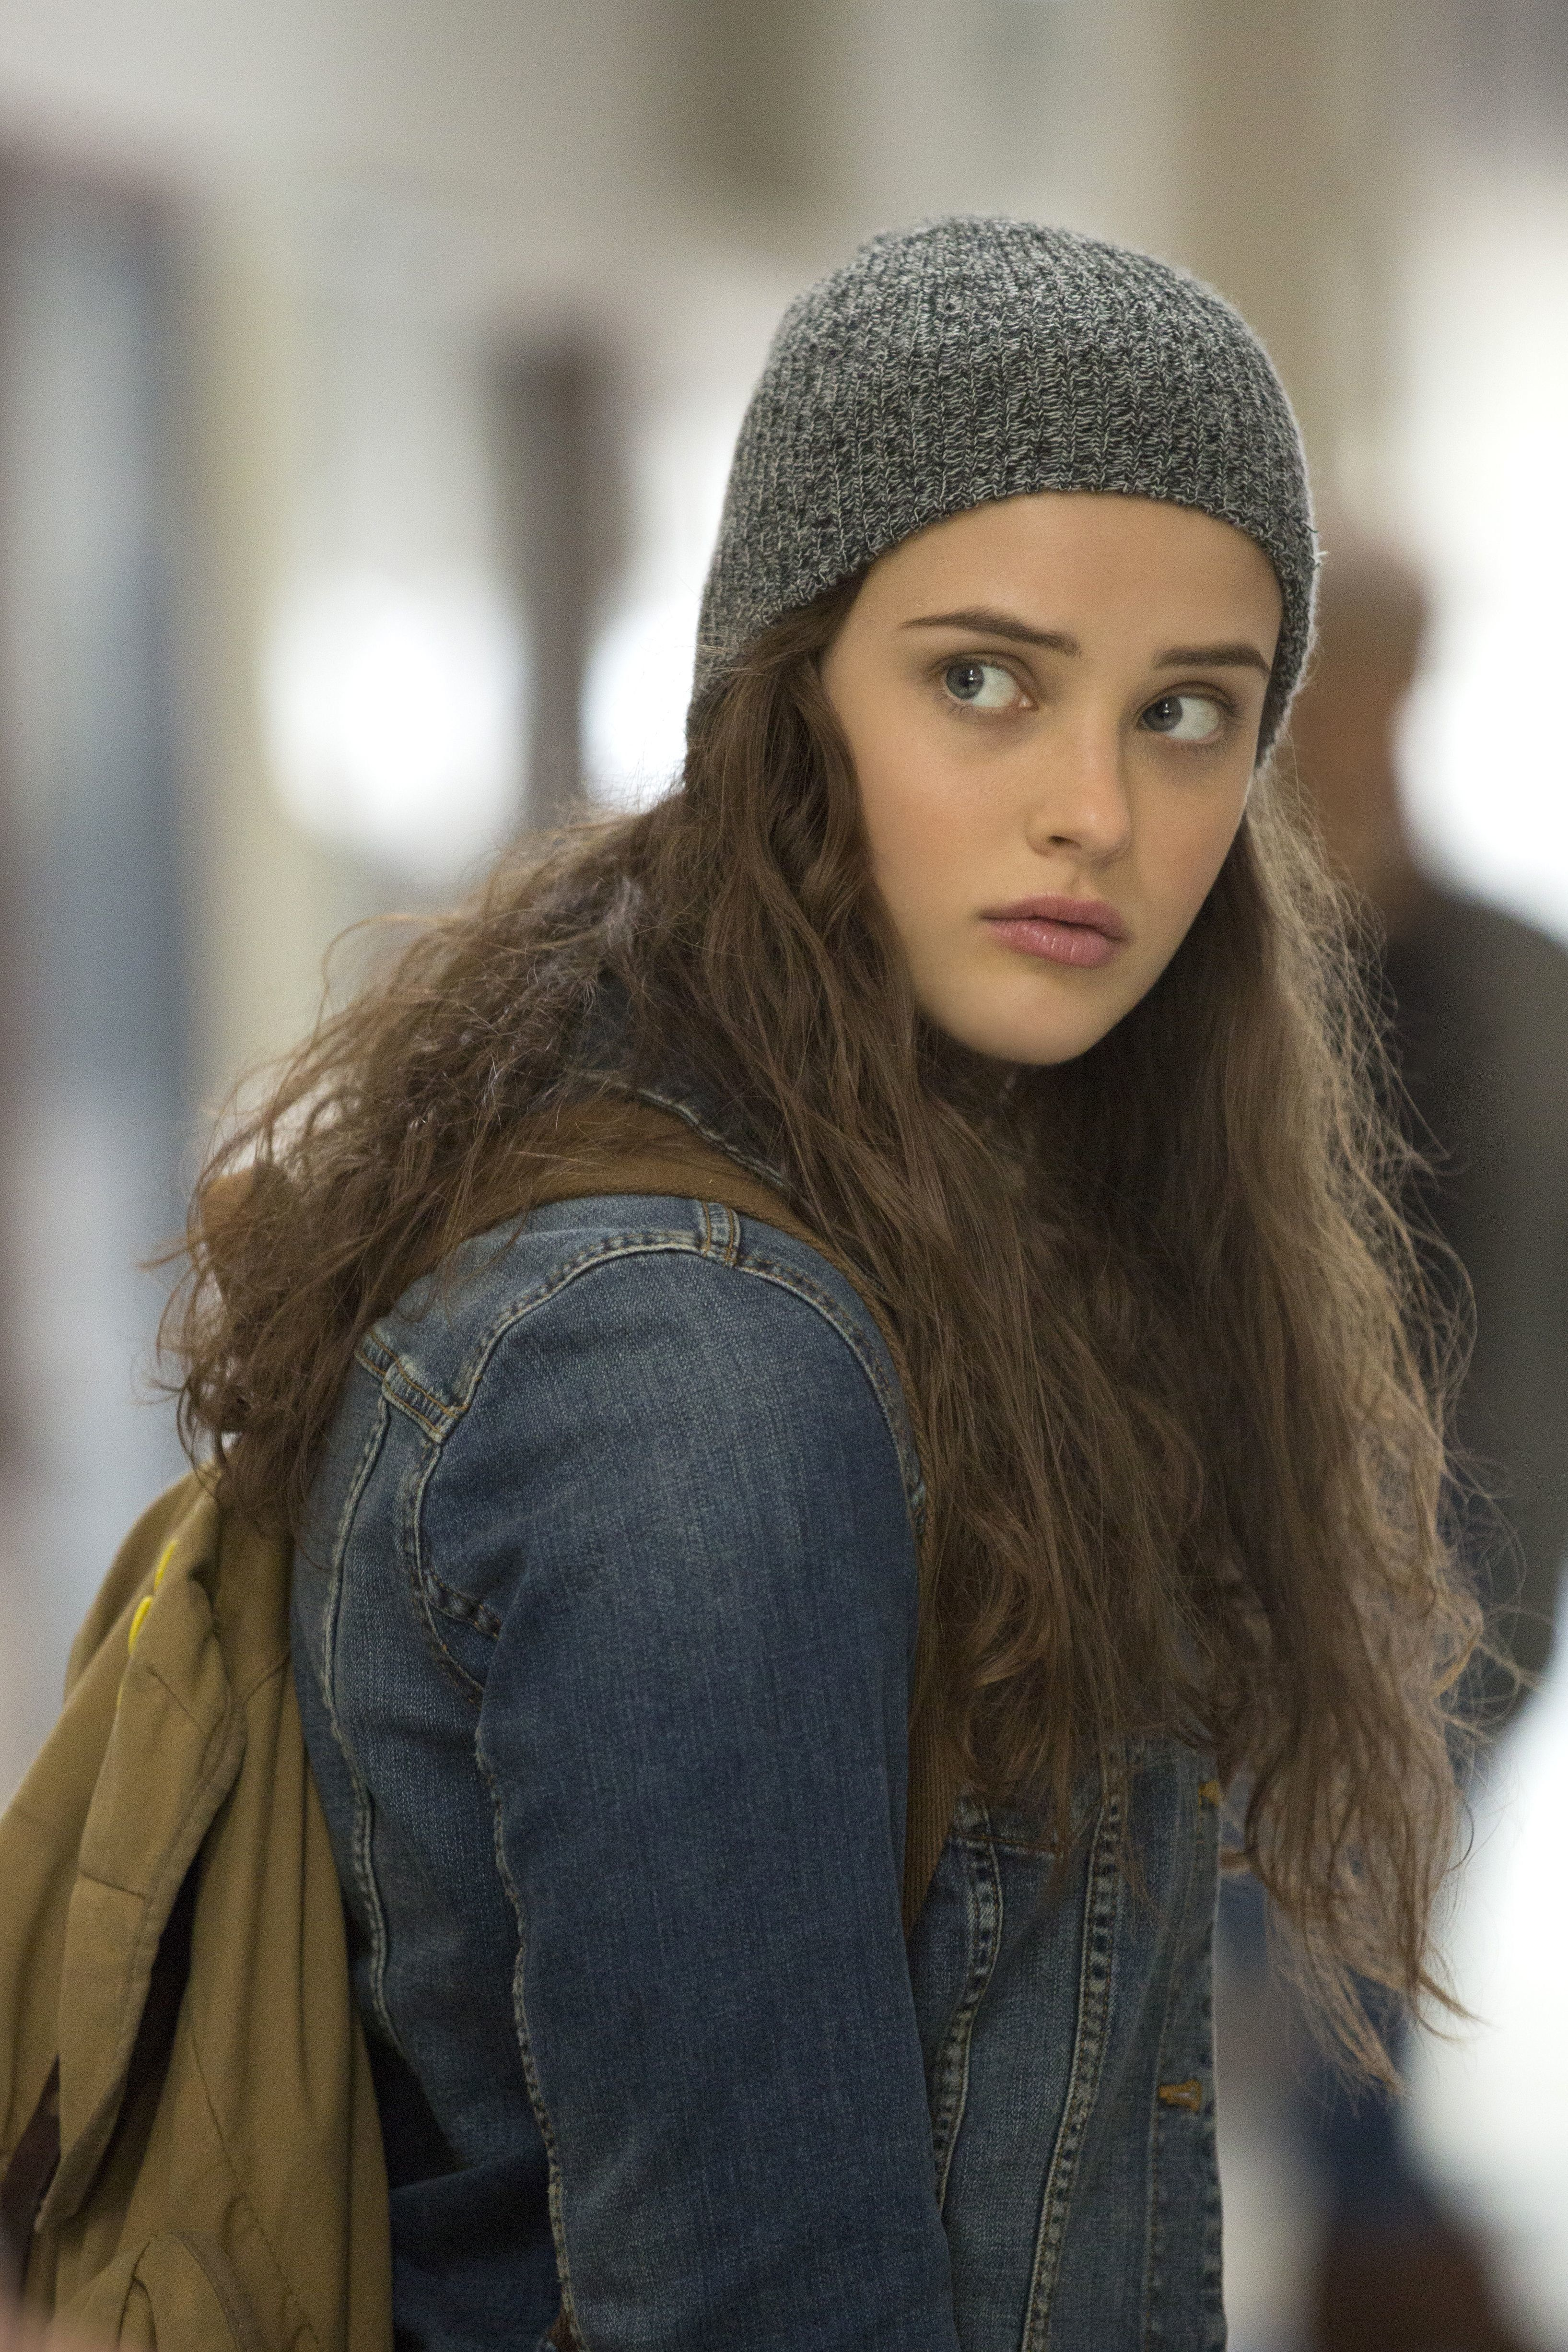 '13 Reasons Why' Season 2 Will Include Advisory Video To Aid Suicide Prevention